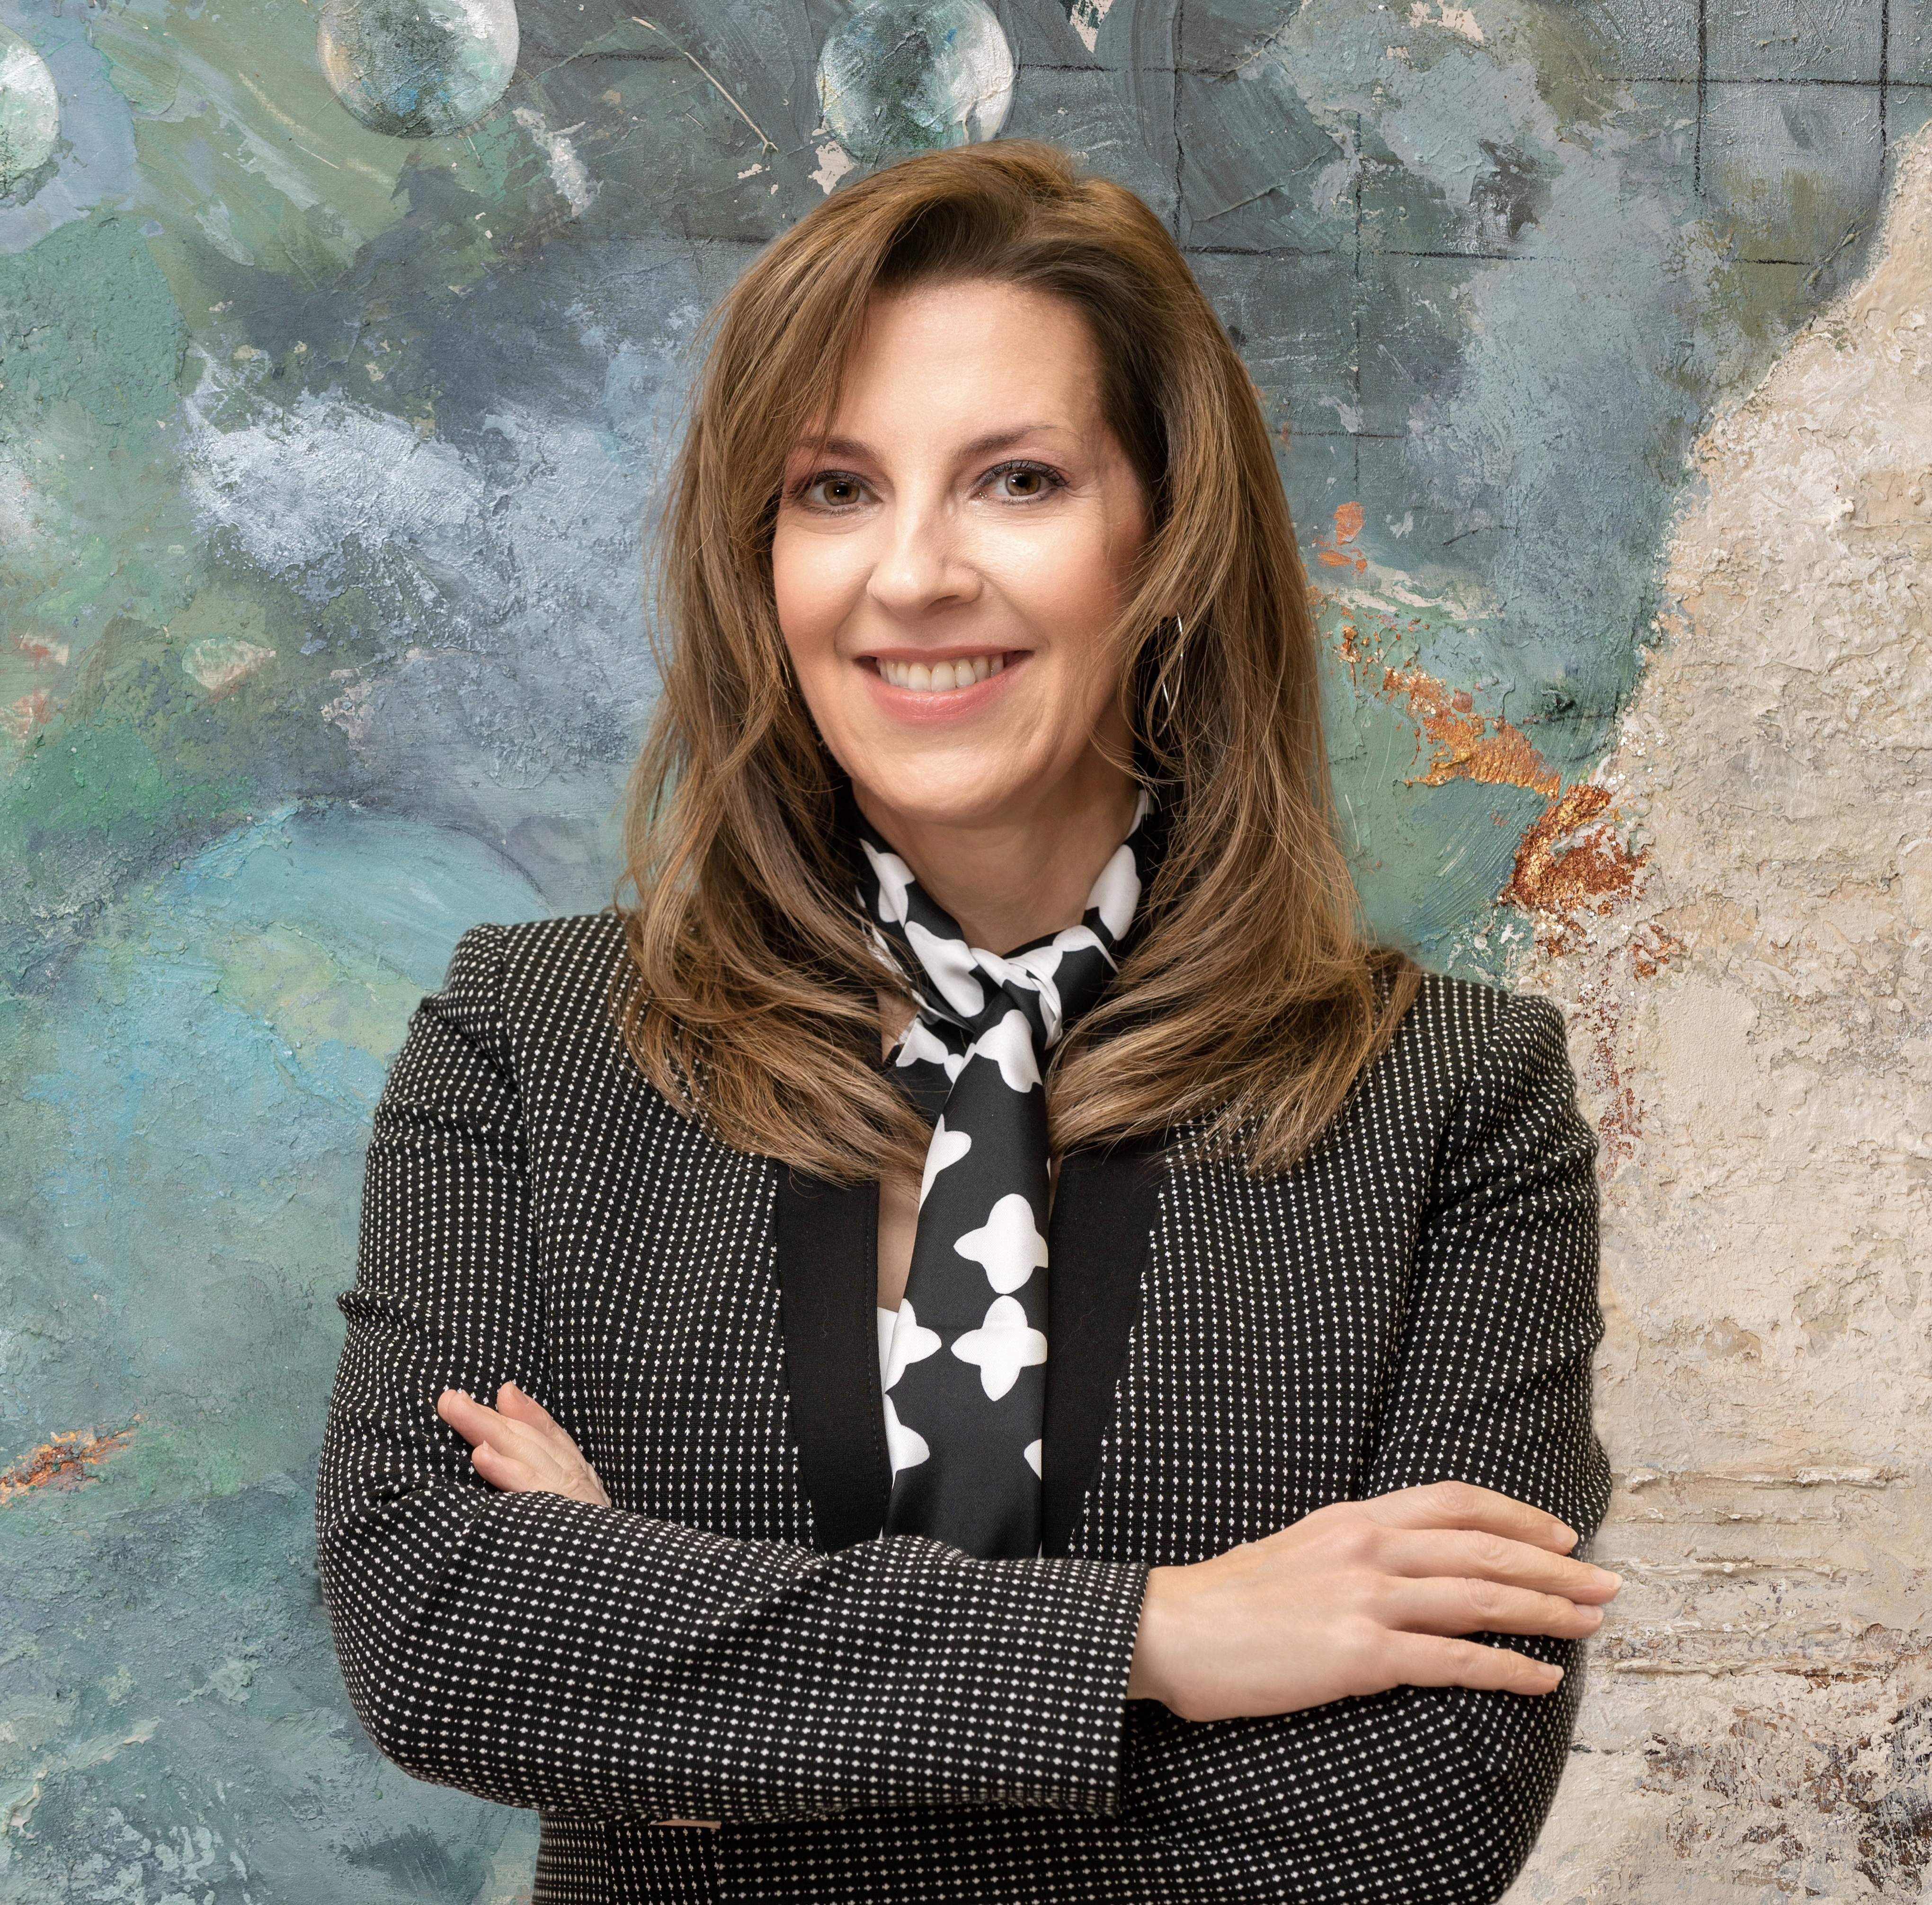 Global PPE Appoints Lori McNeill as Chief Operating Officer